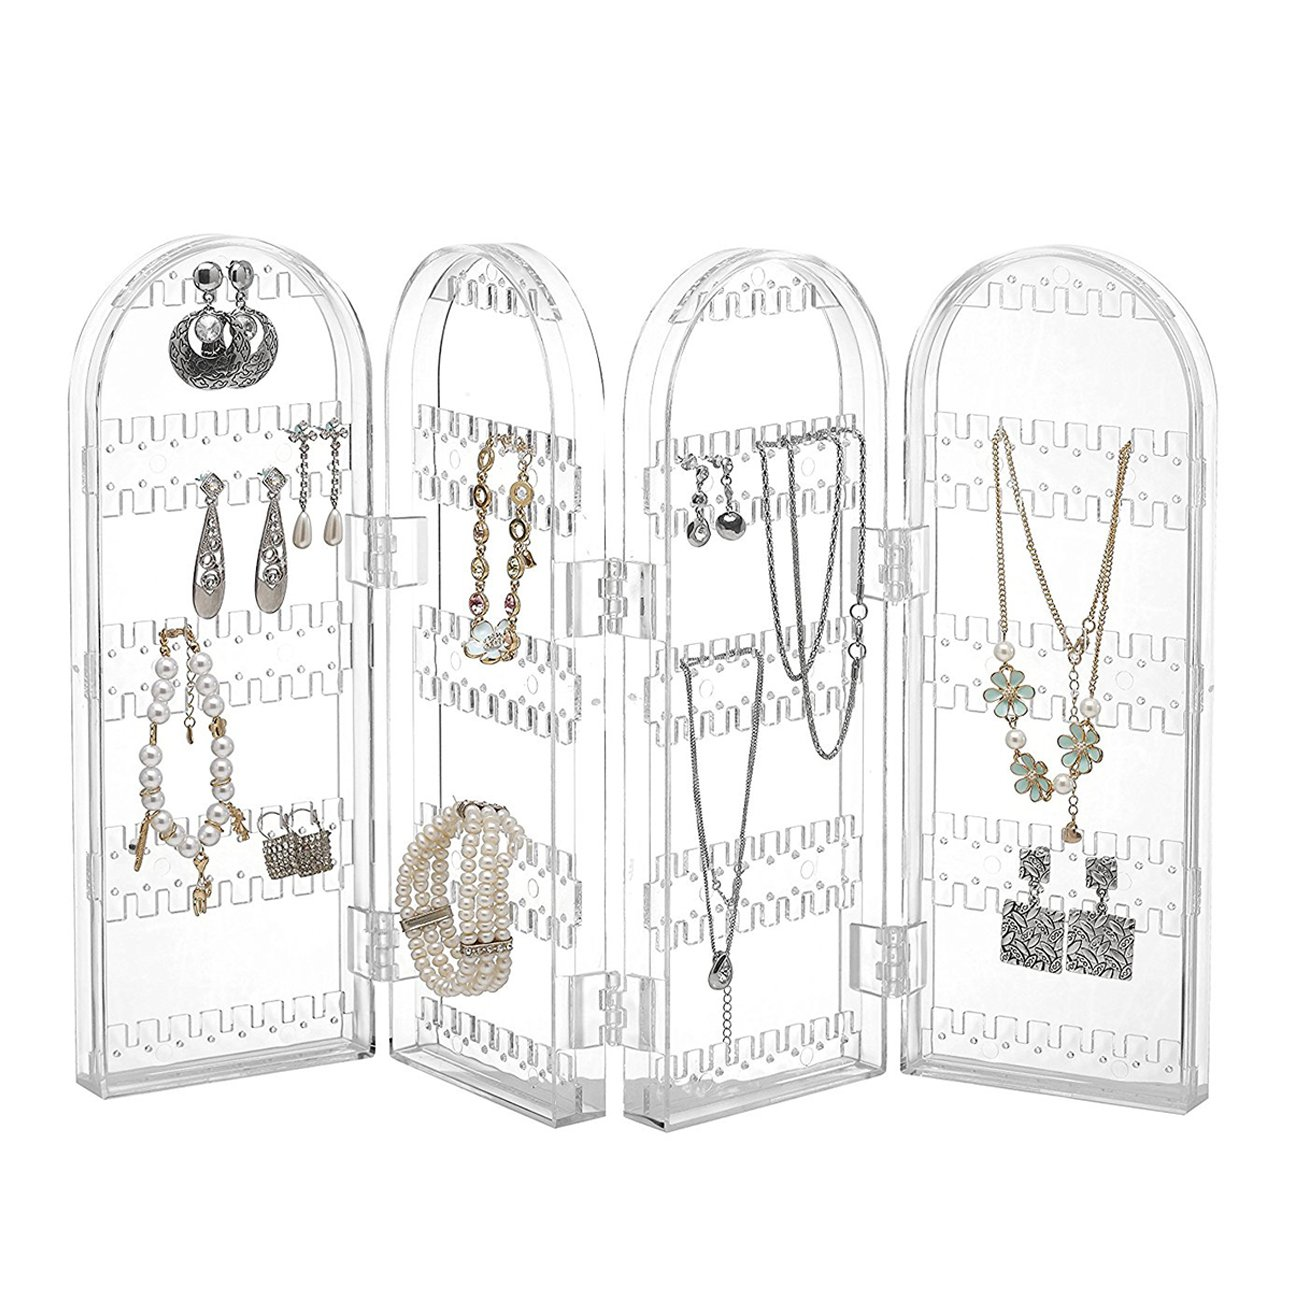 THEE Foldable Acrylic Jewelry Hanger Organizer Earring Necklace Bracelet Holder Display Stand